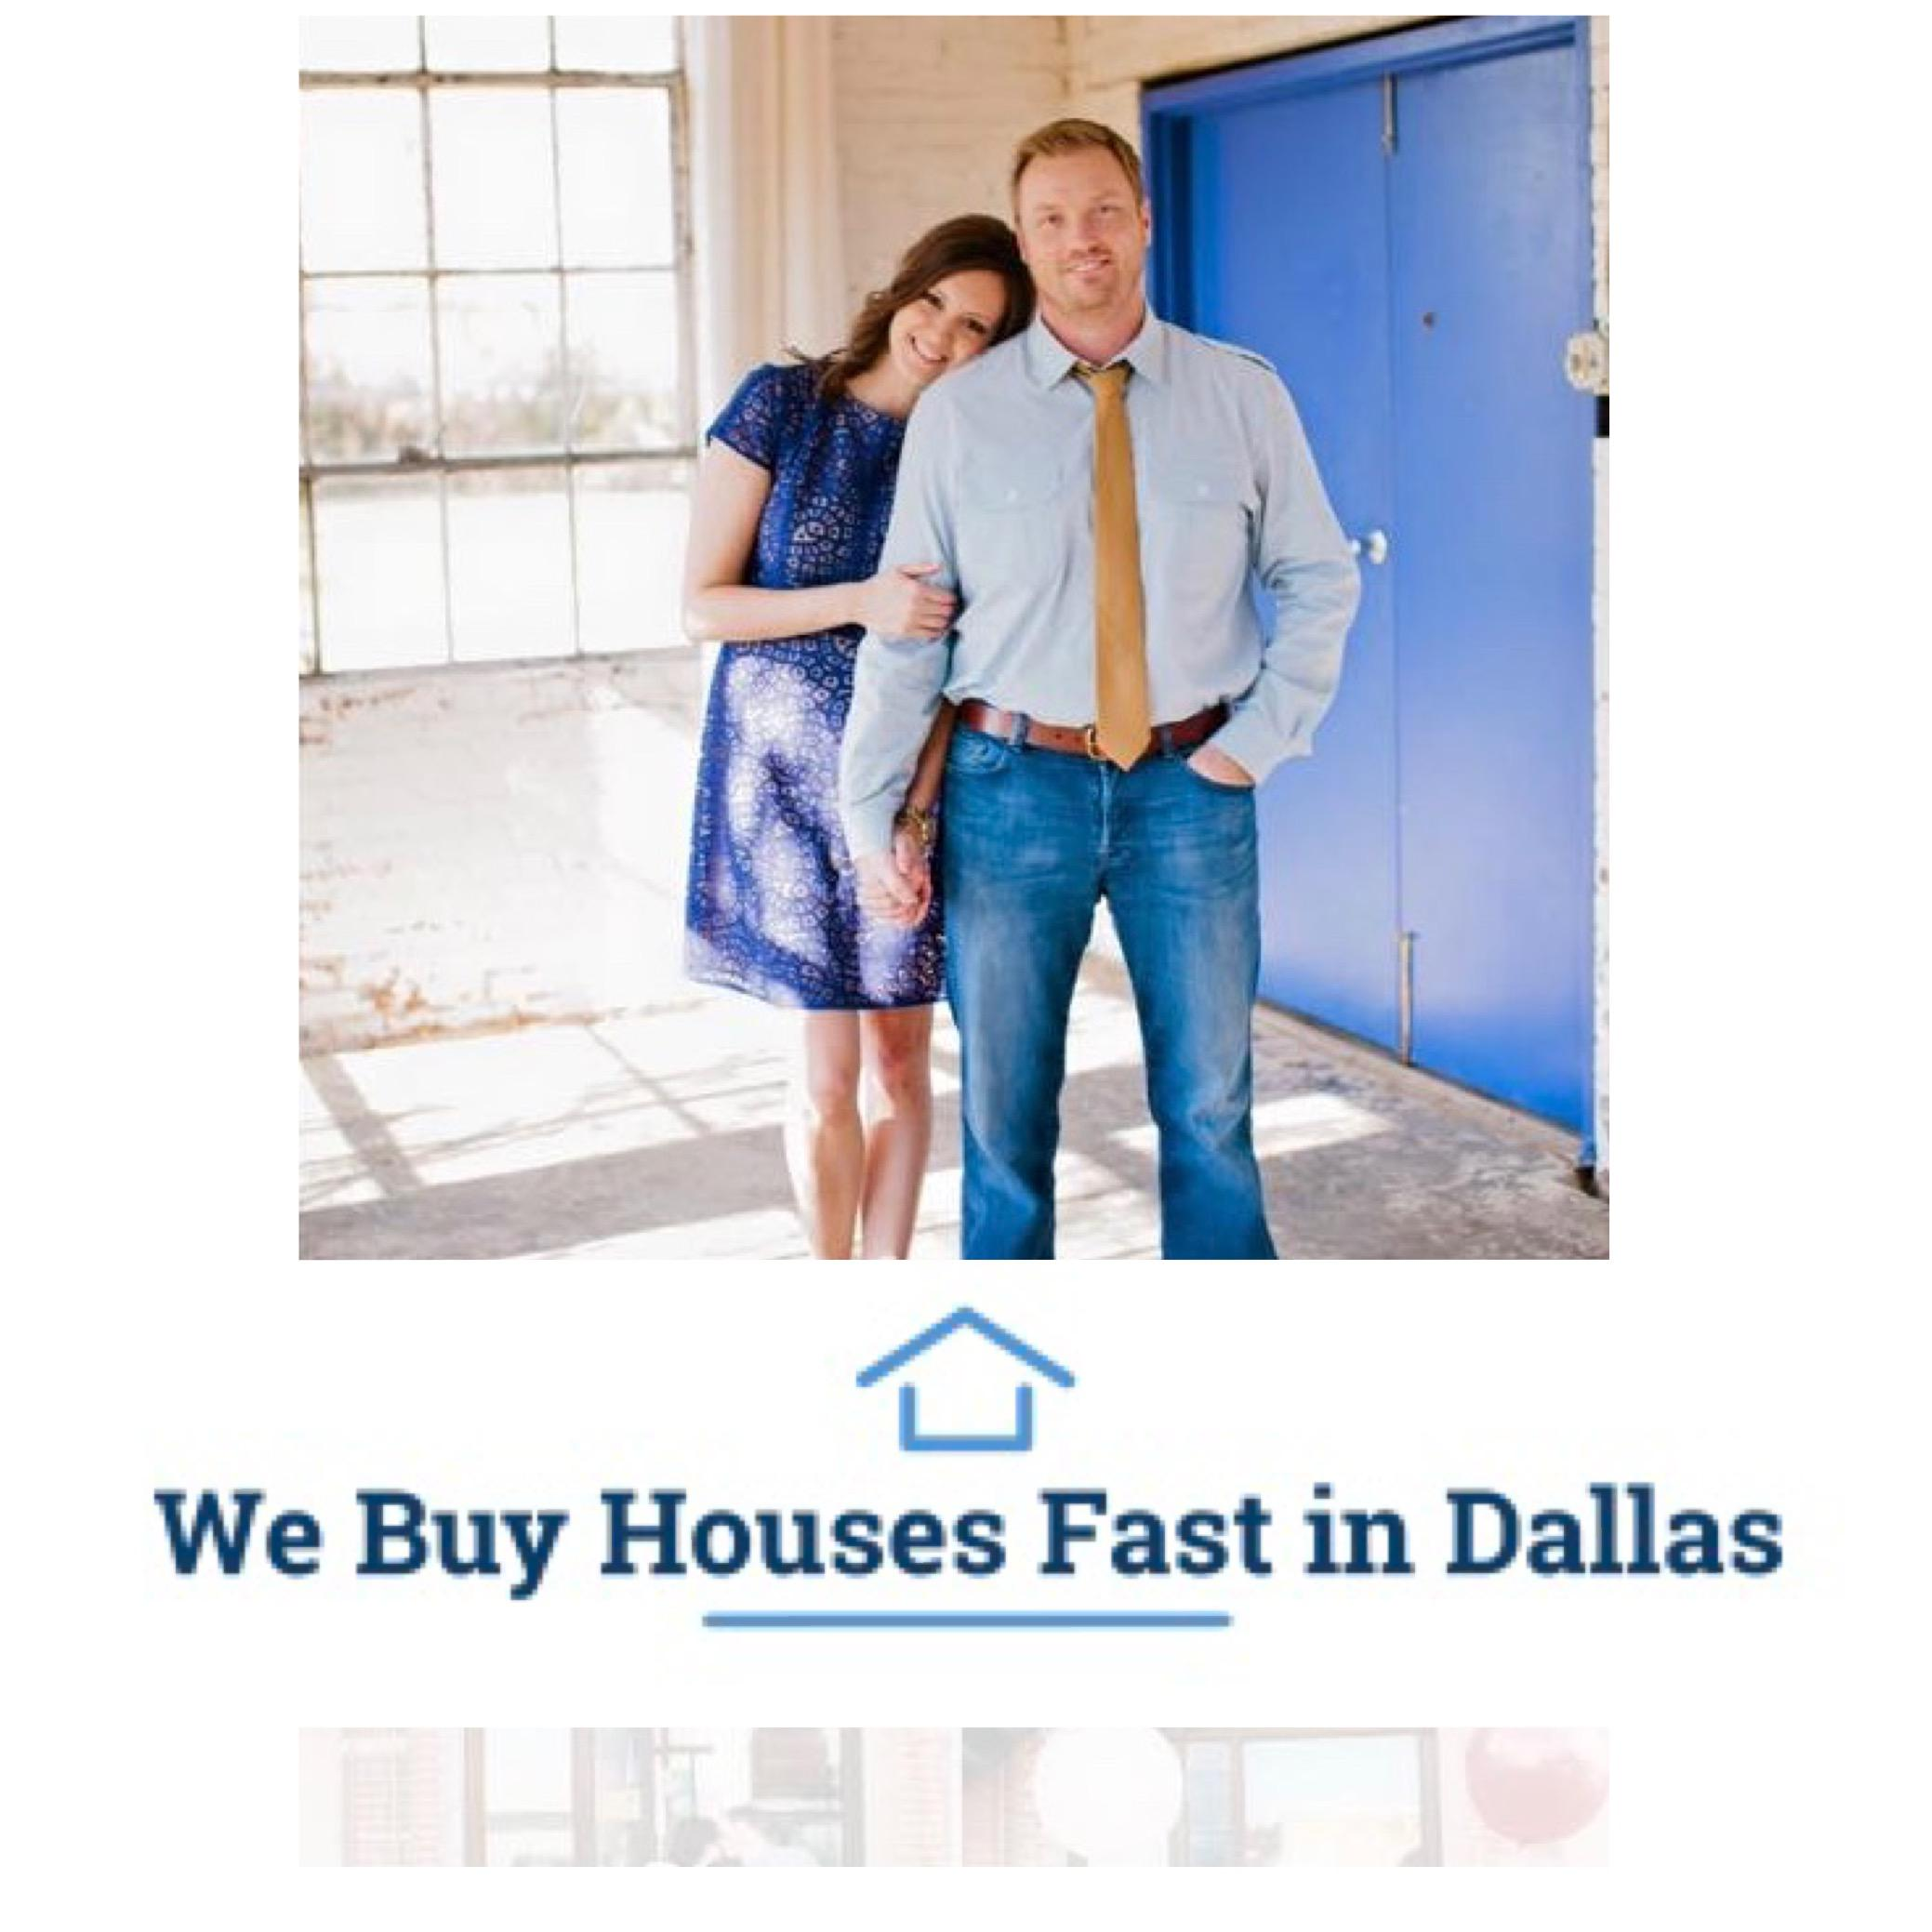 We Buy Houses Fast in Dallas image 2